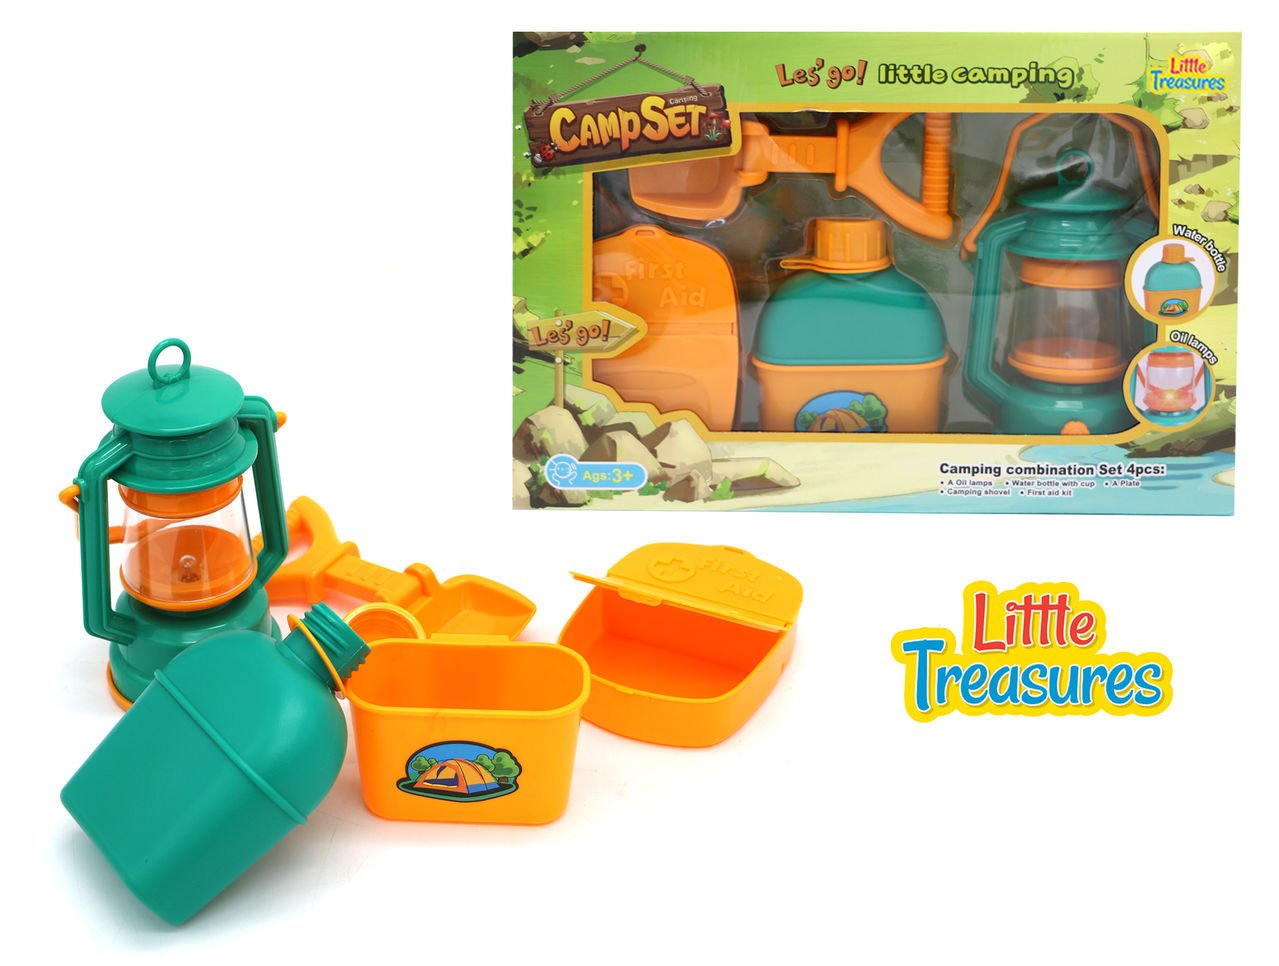 Camp Set for Little Campers Camping Set for Adventurous Boys and Girls who Love Being Outdoors and Pretend Play Camping at Home